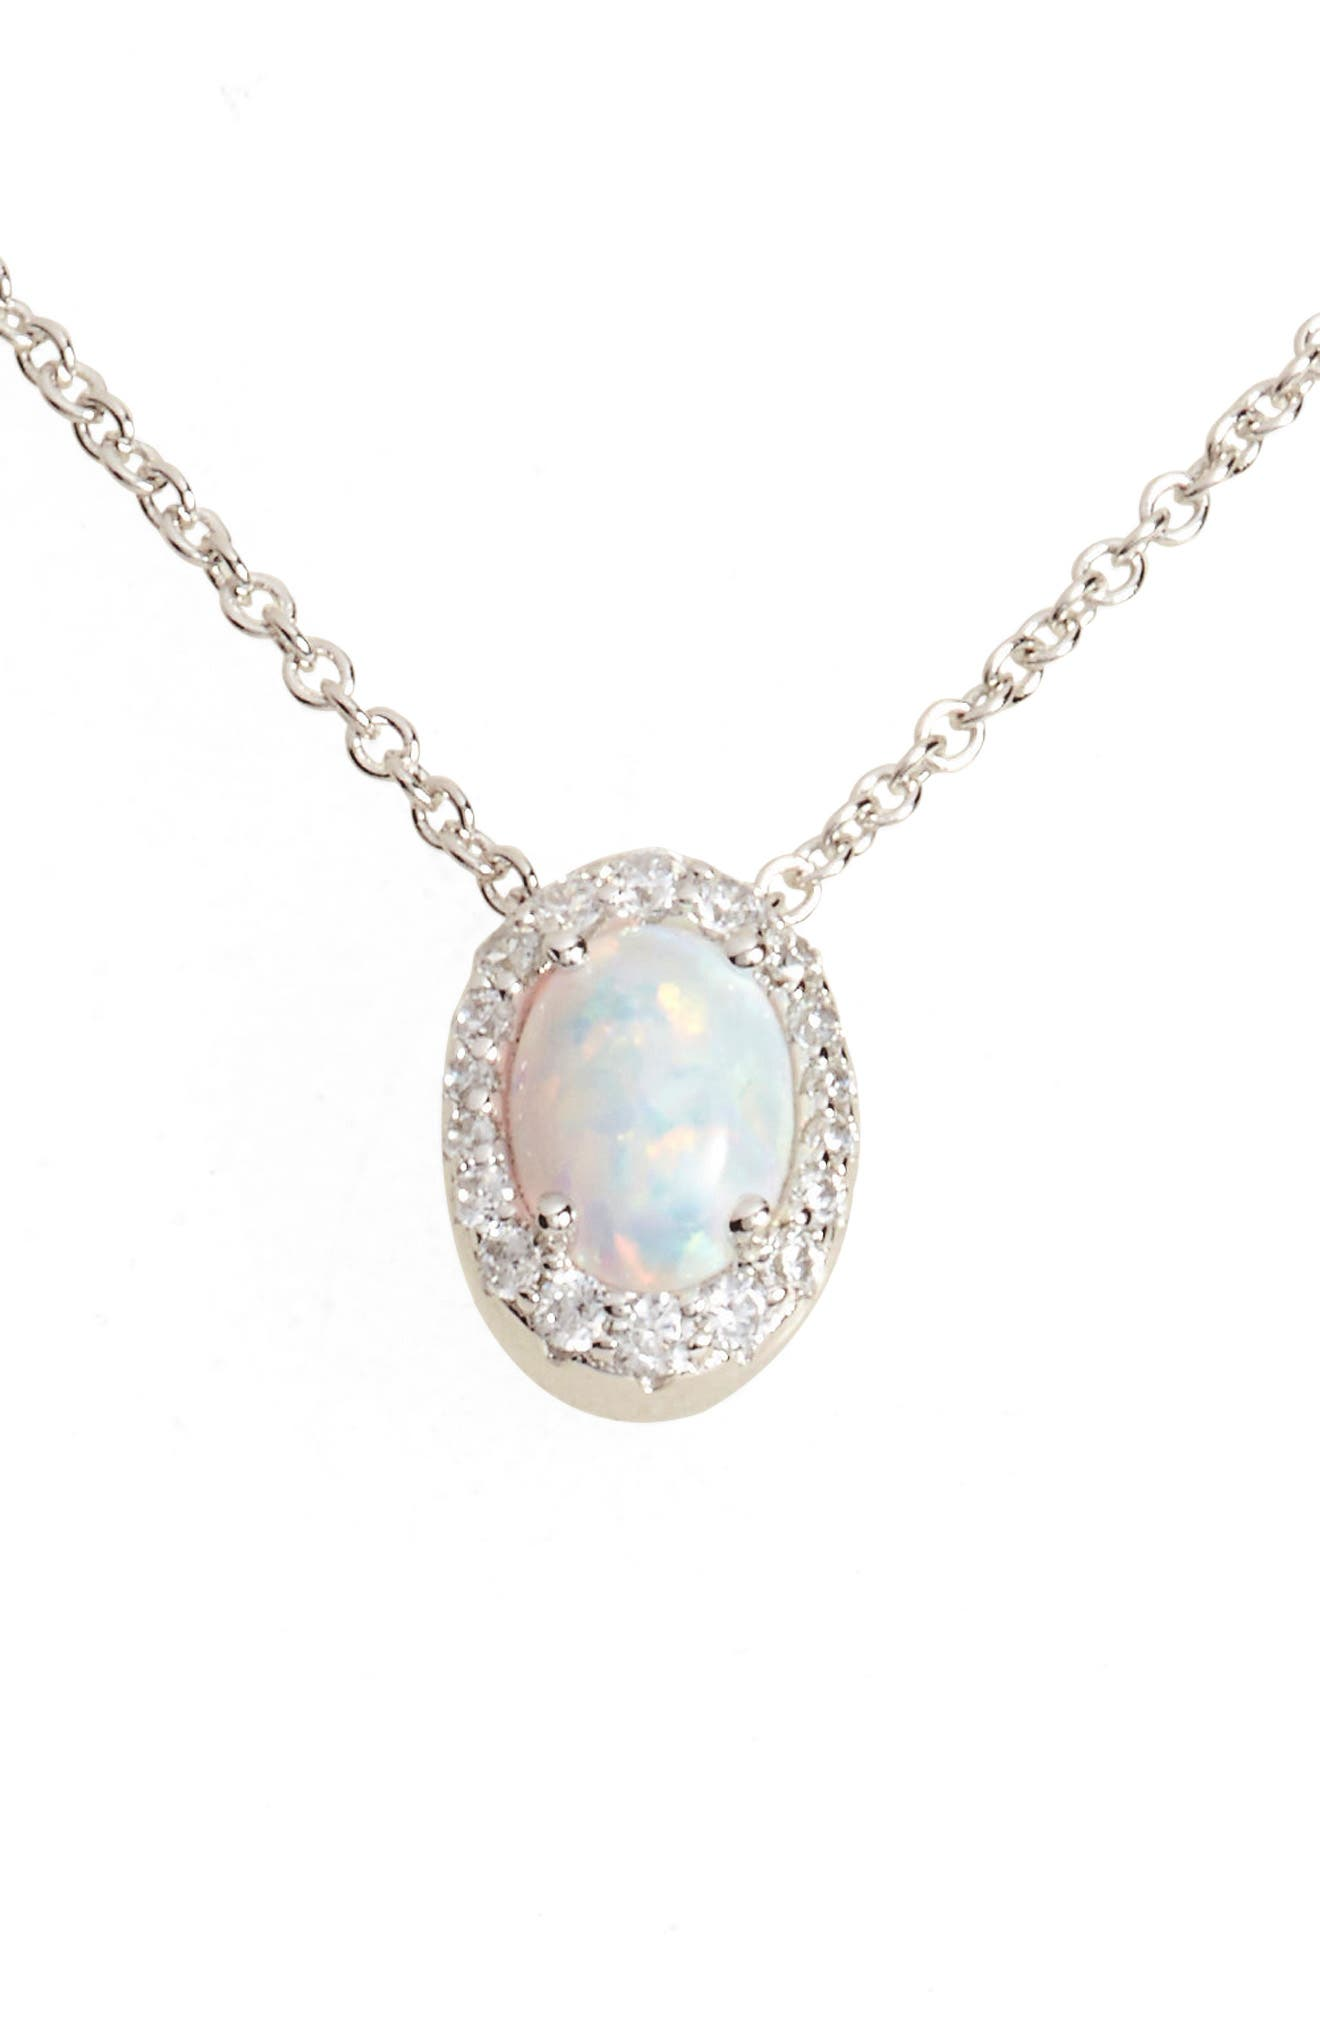 Simulated Opal Halo Pendant Necklace,                             Main thumbnail 1, color,                             SILVER/ OPAL/ CLEAR